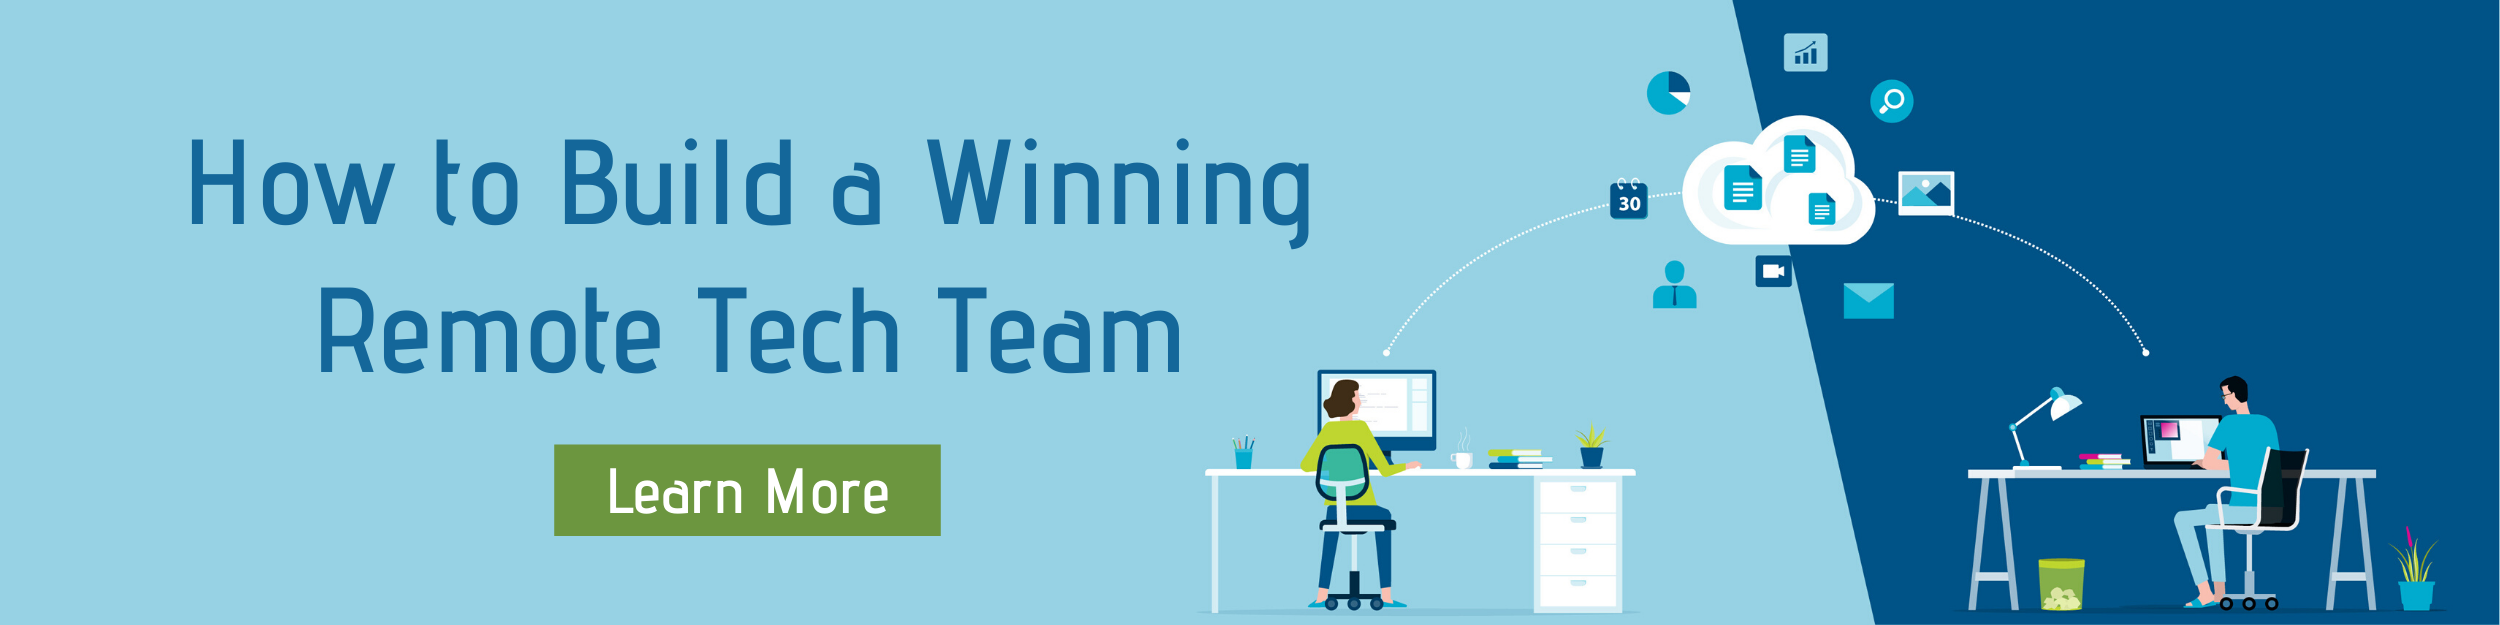 How to Build a Winning Remote Tech Team